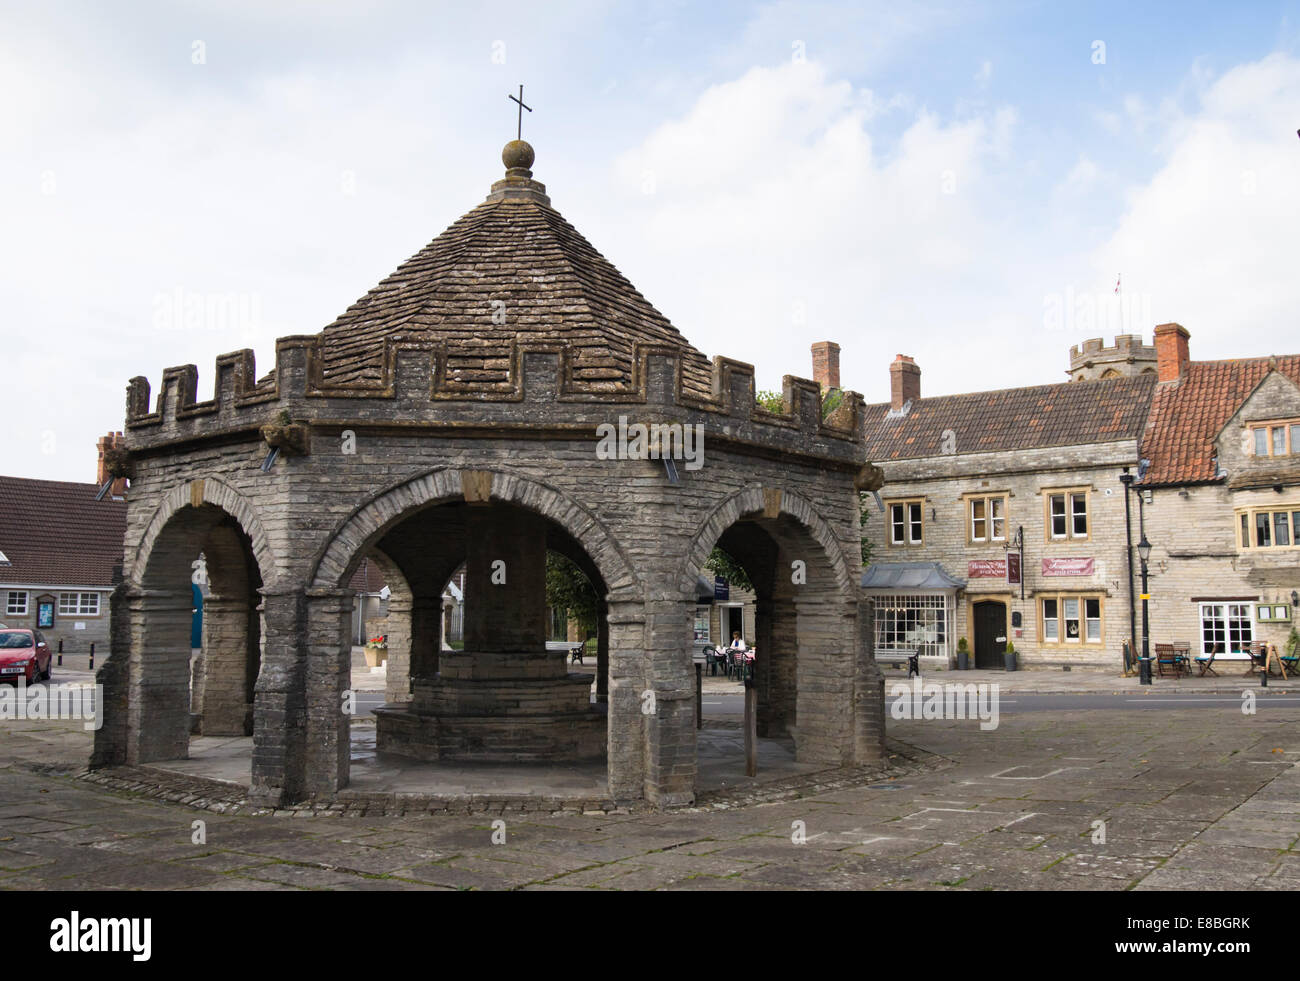 Somerton a small town in somerset England UK - Stock Image